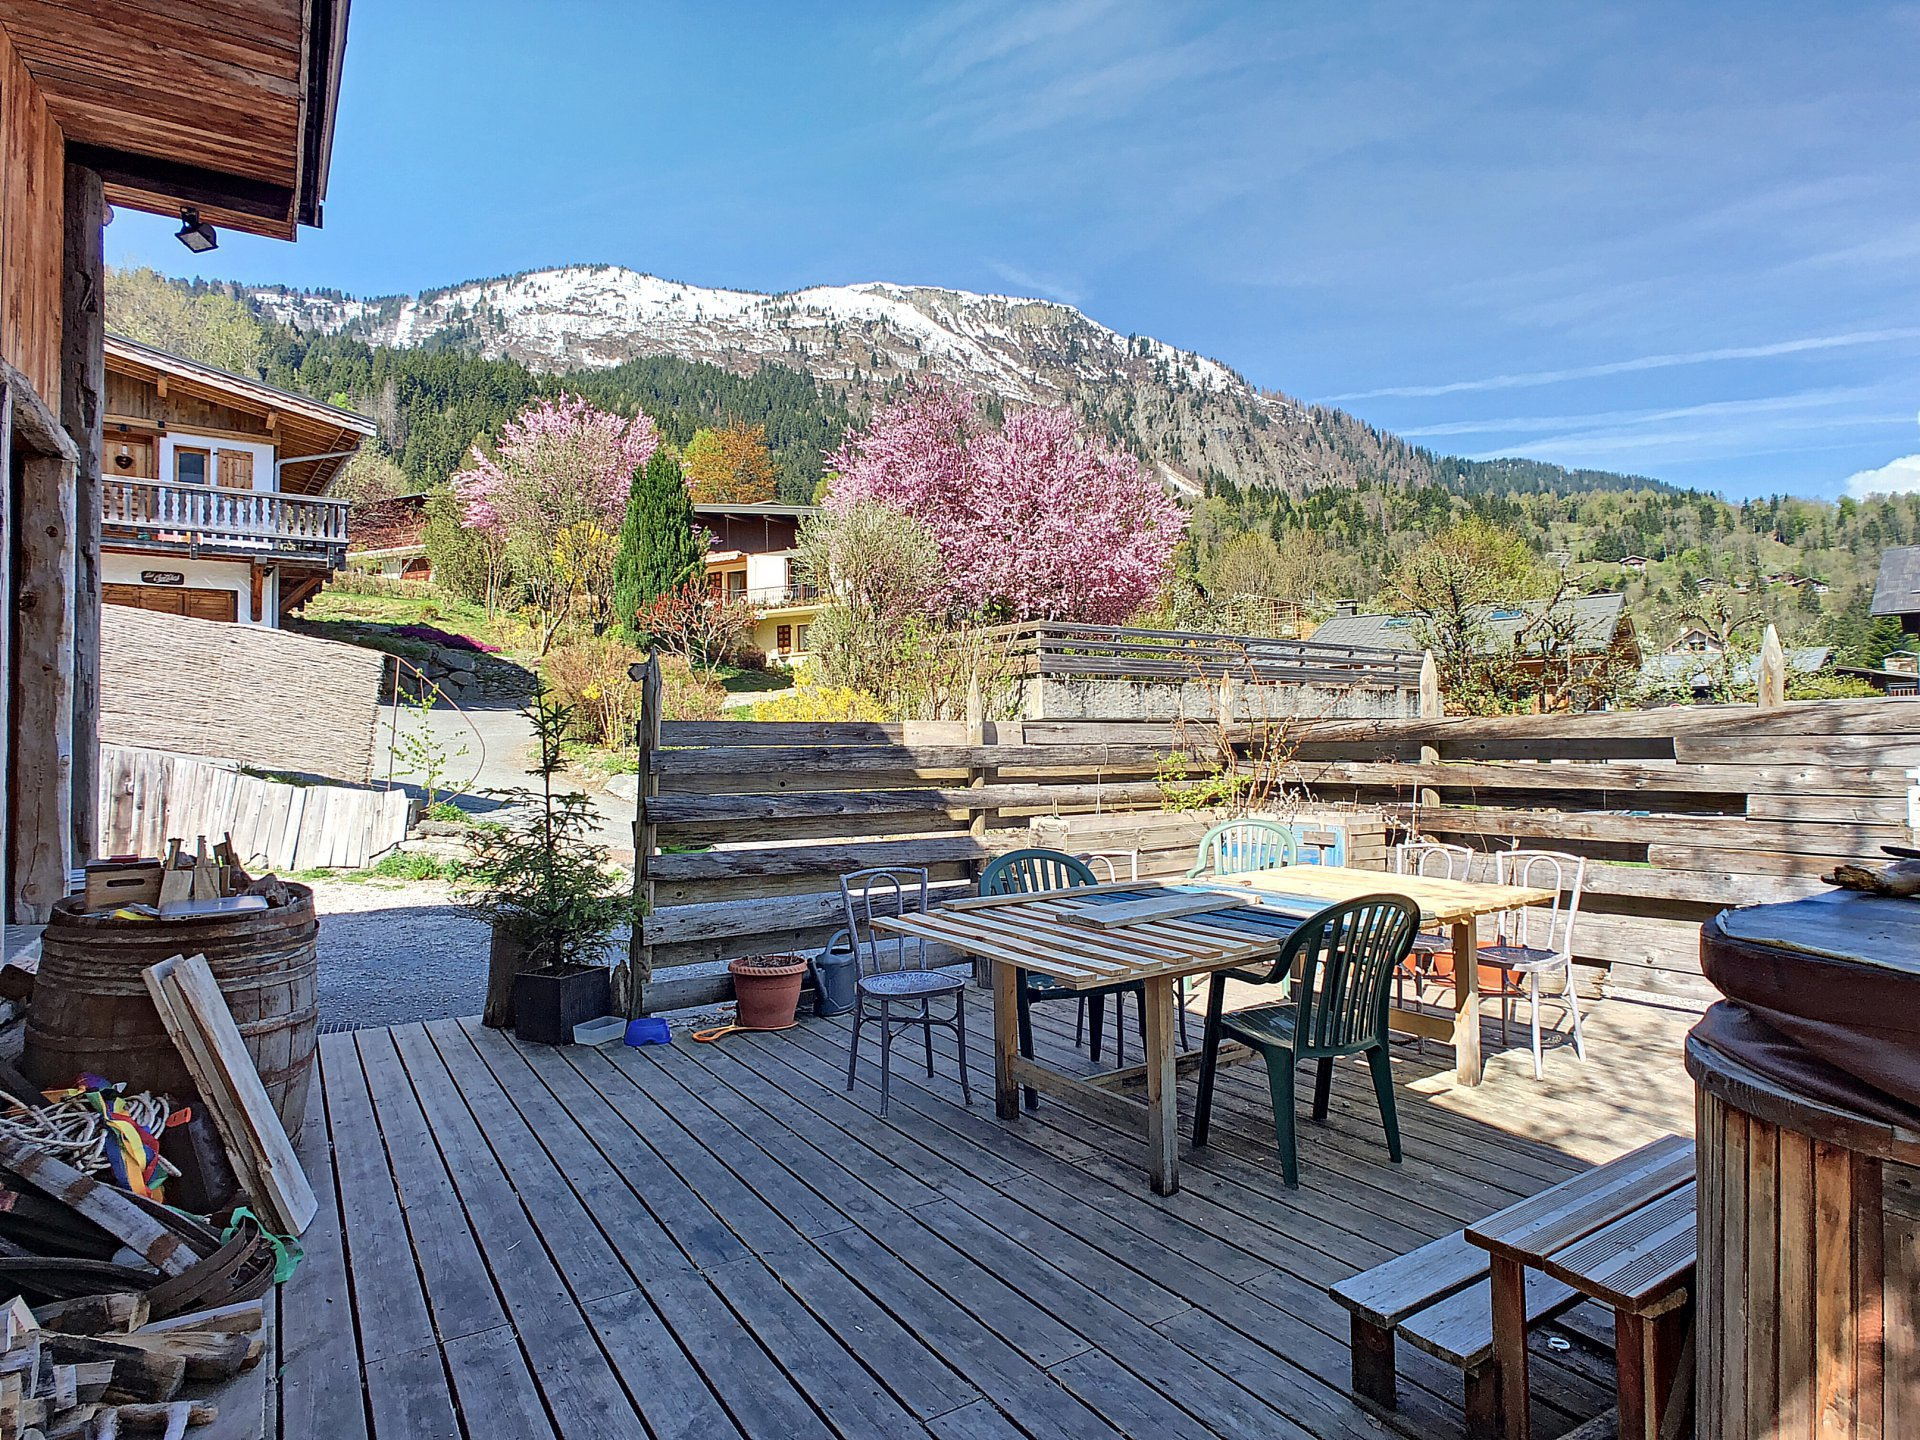 Sunny terrasse with a view over the Fizz mountain range